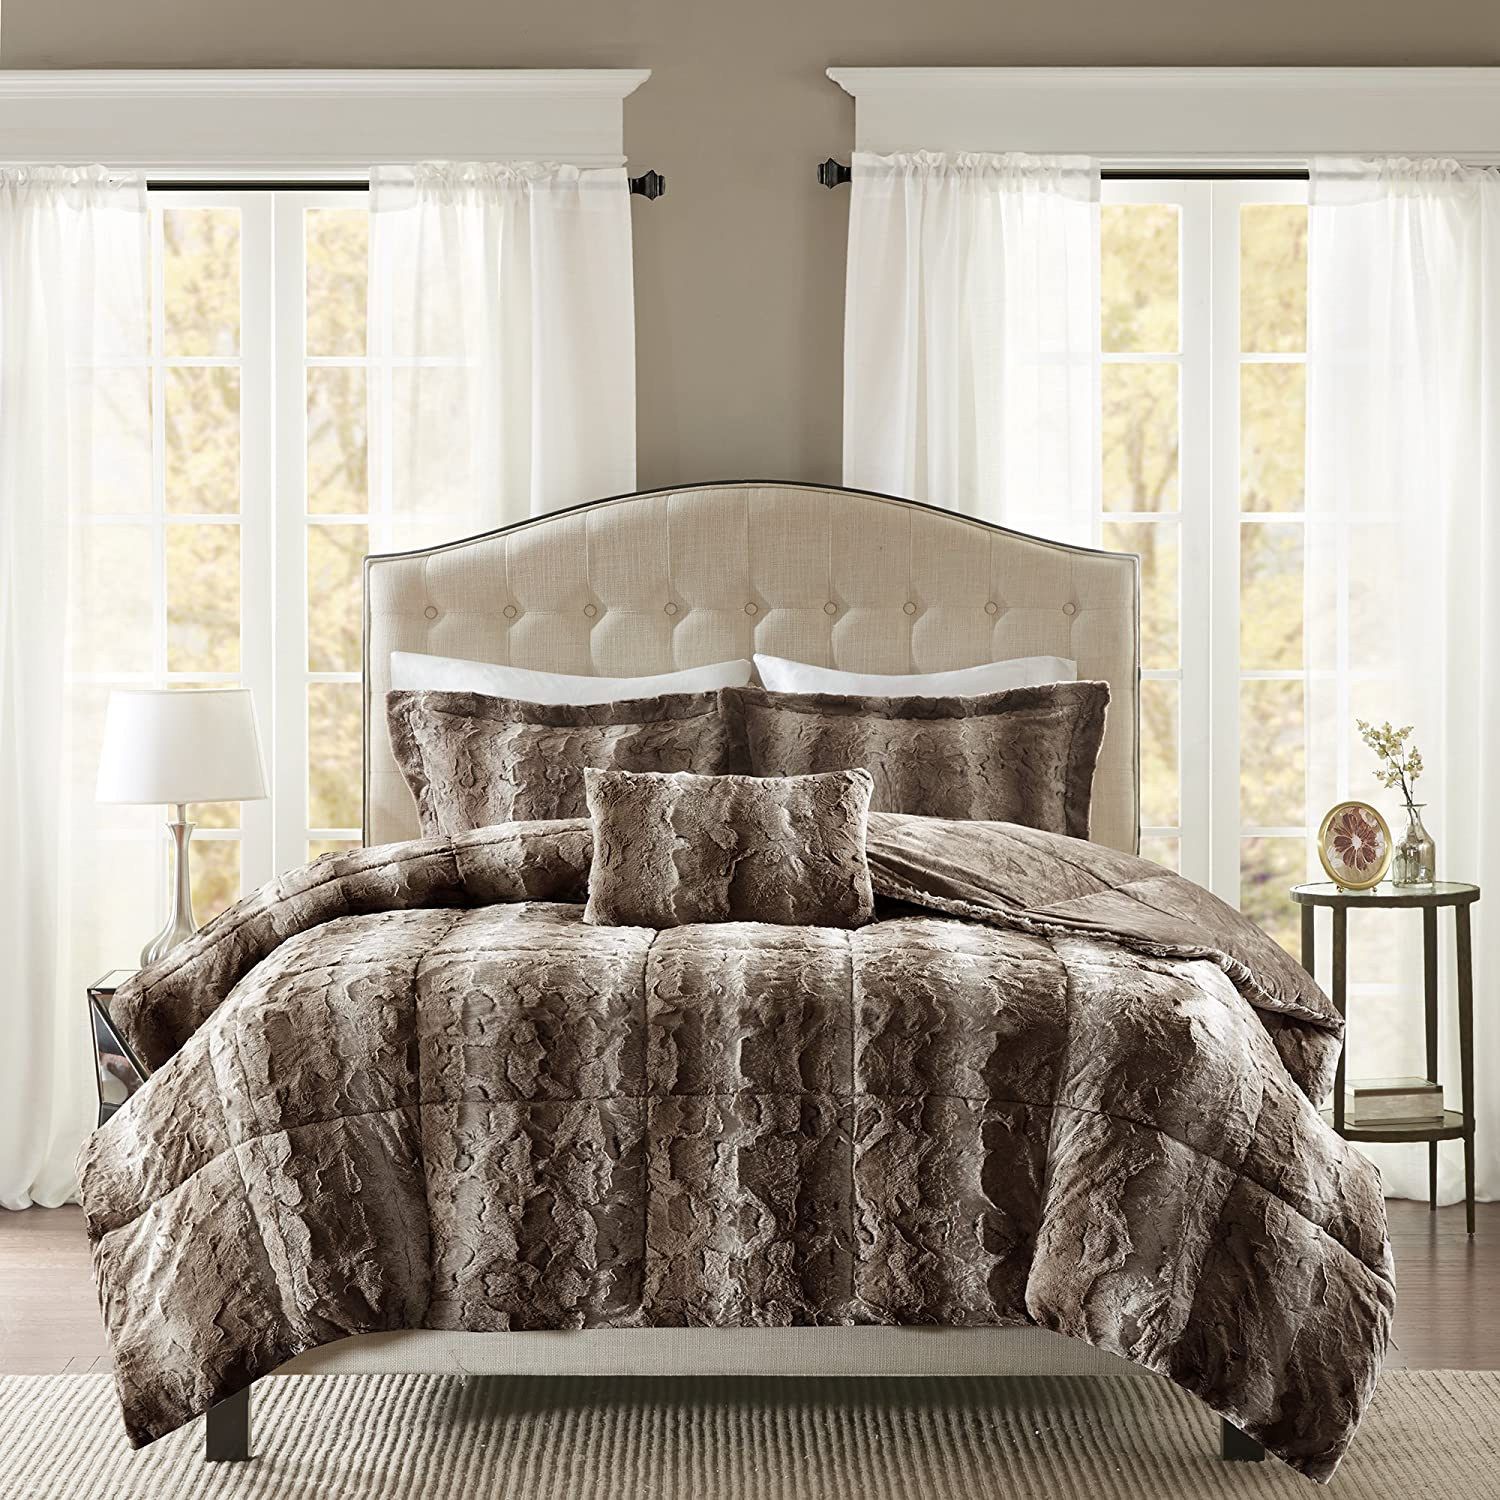 Madison Park Zuri Faux Fur Bedroom 4 Pieces Animal Print Bed Comforter Set, King, Chocolate